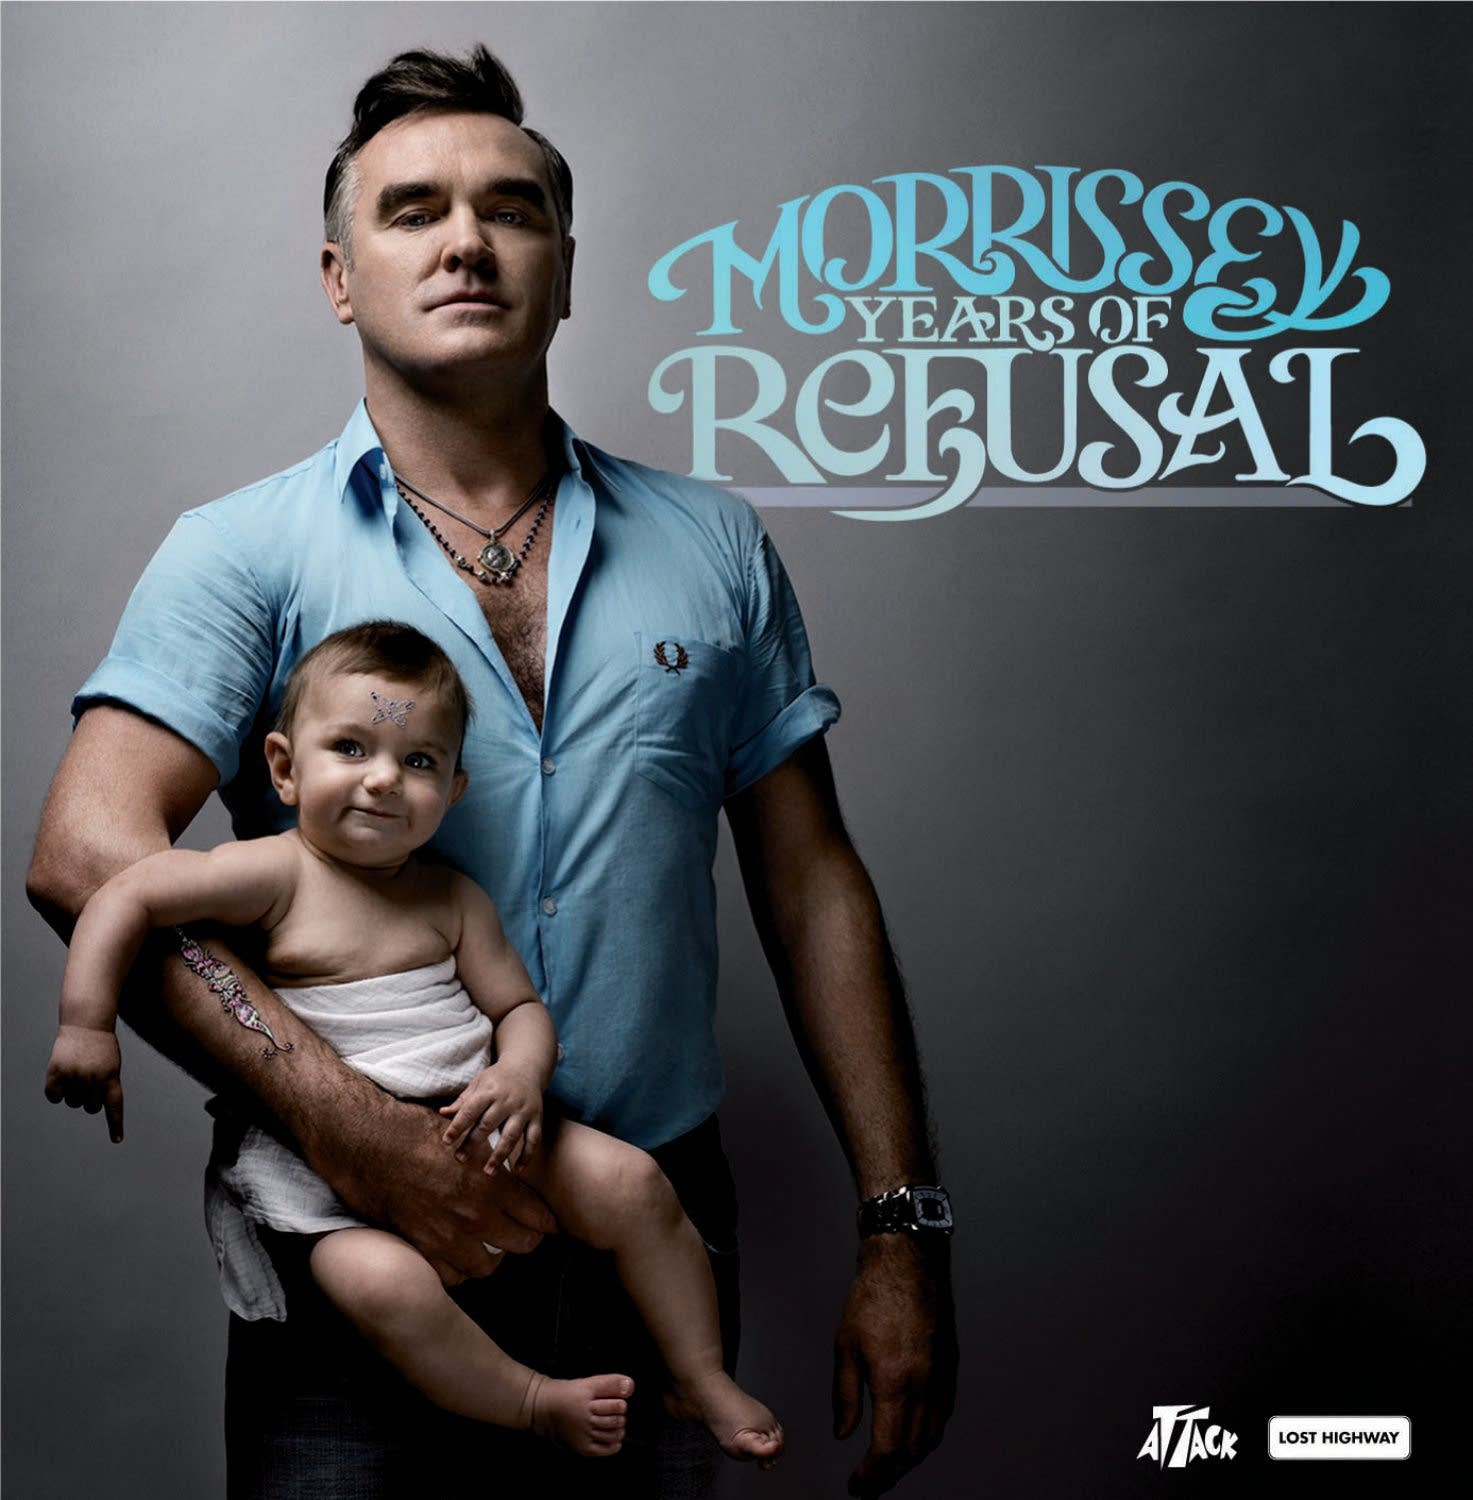 MORRISSEY – Years Of Refusal